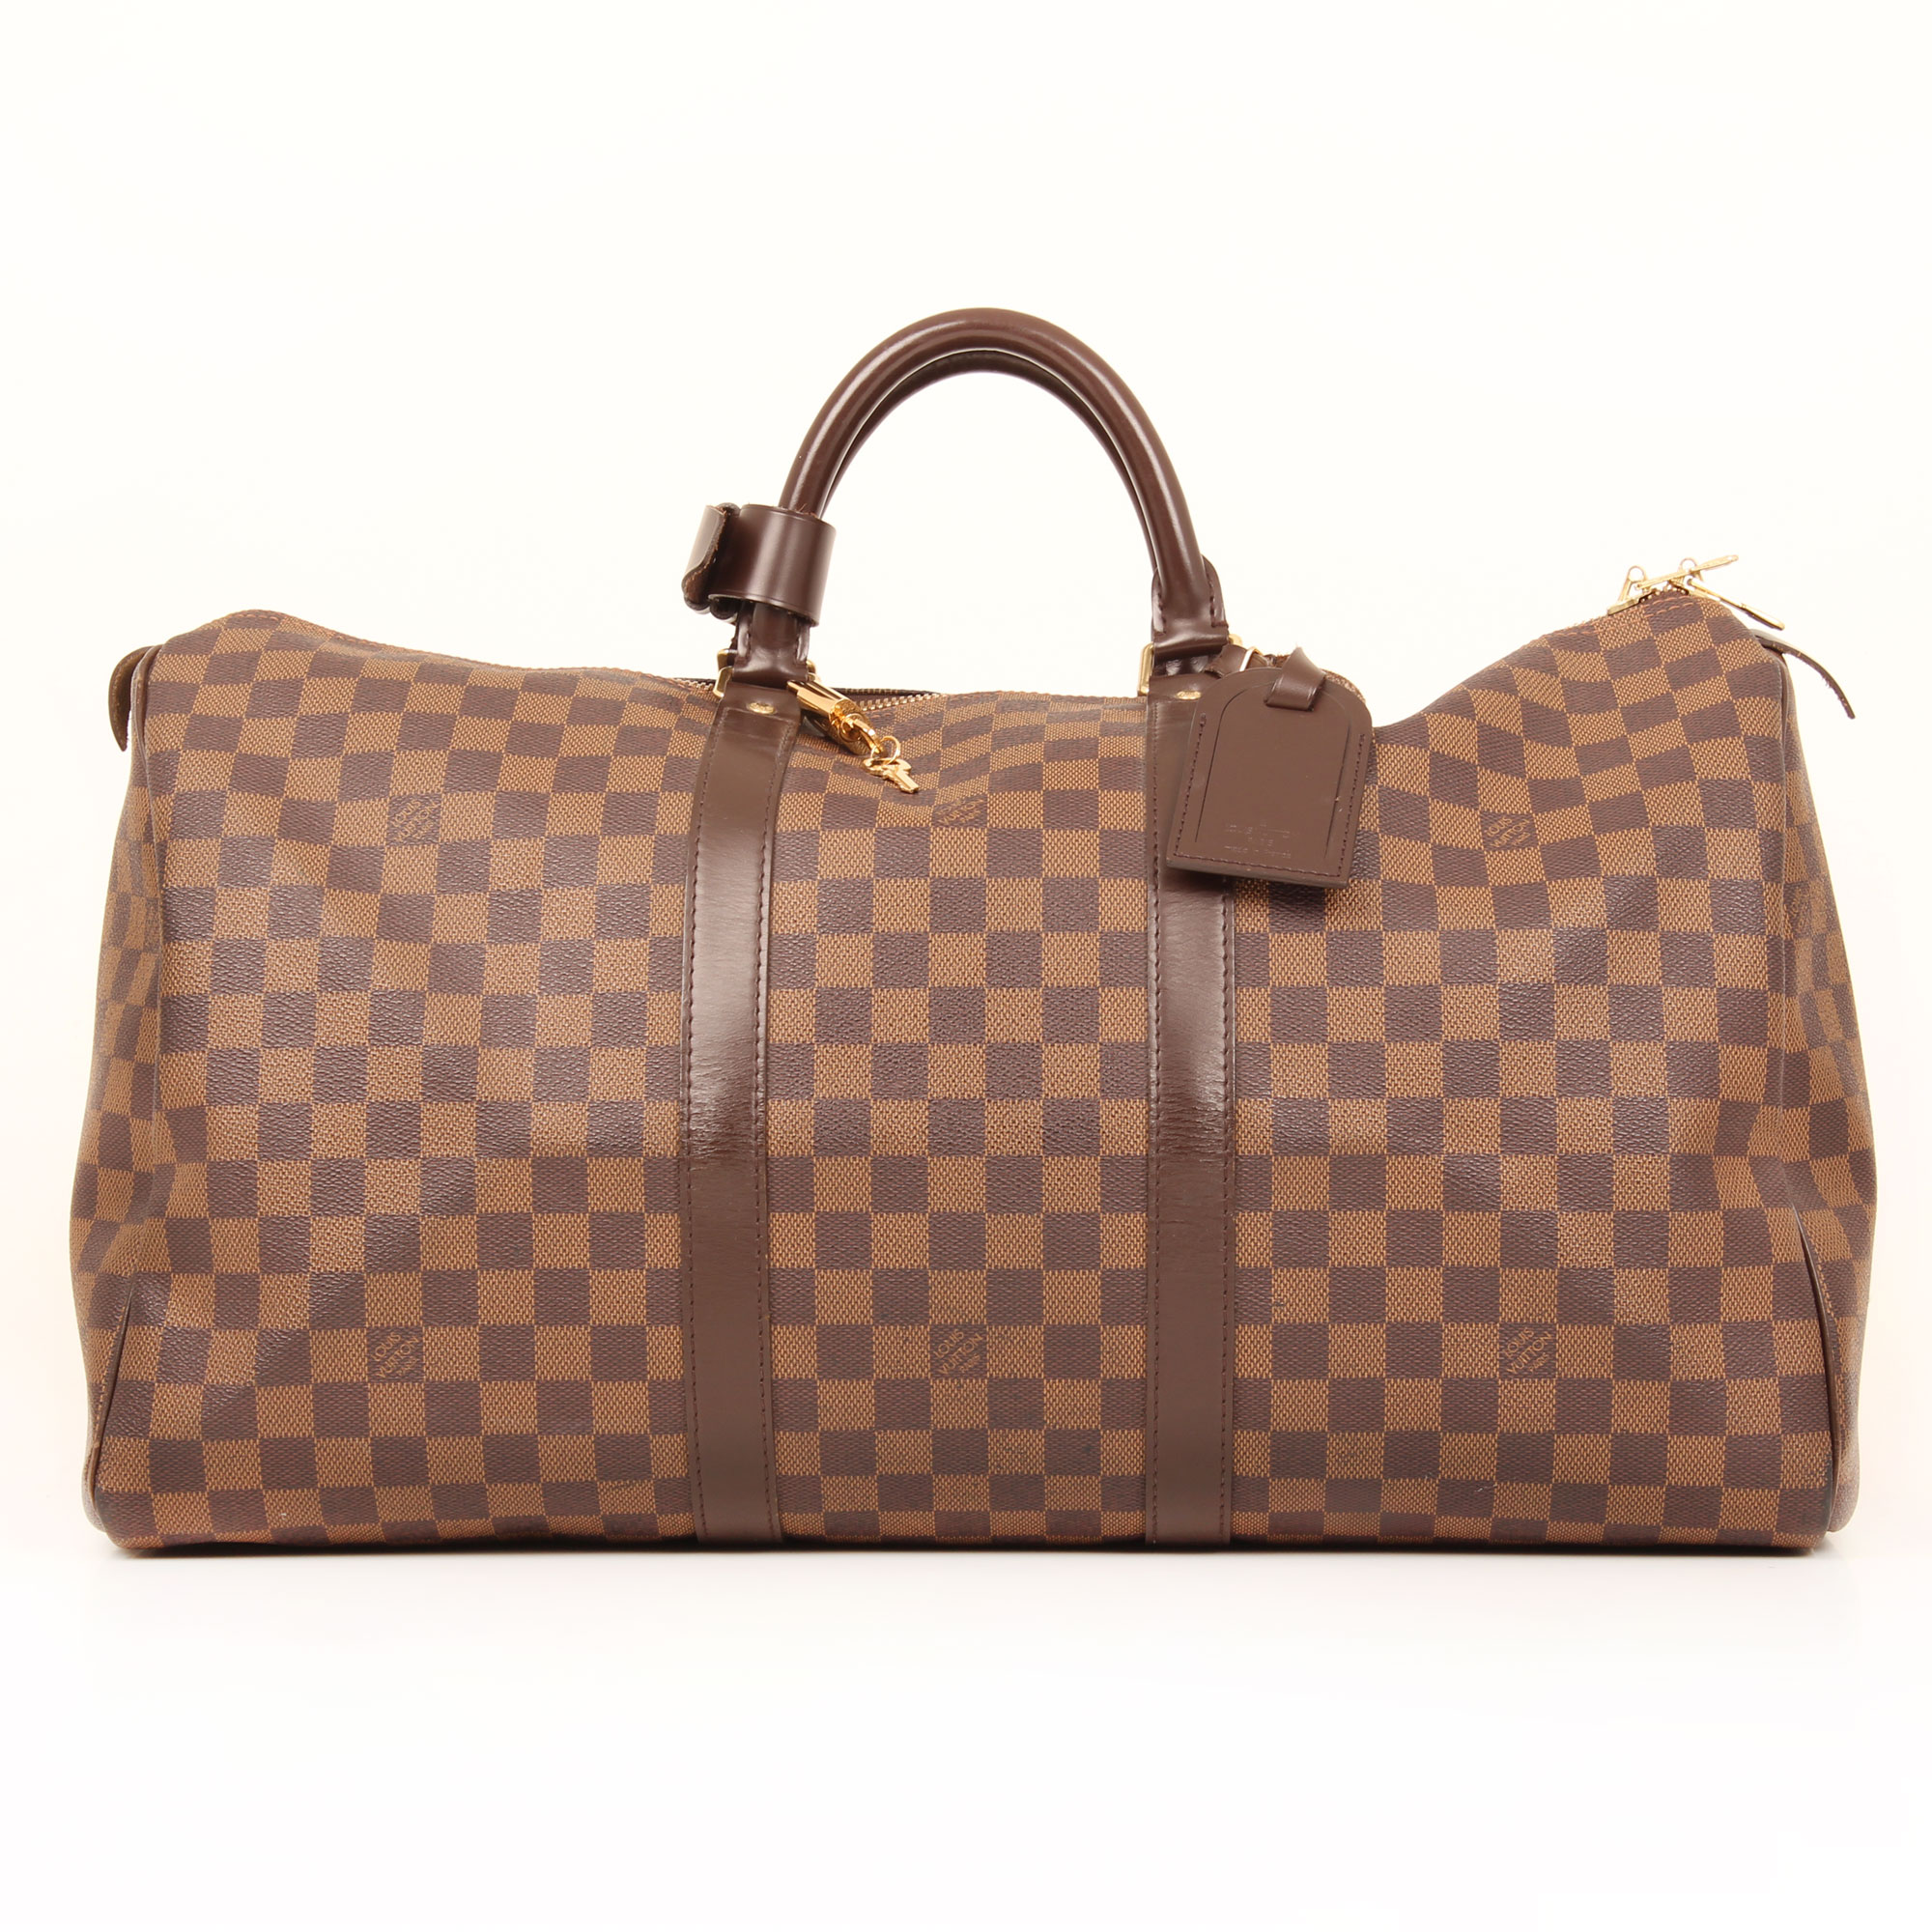 travel-bag-louis-vuitton-keepall-50-damier-ebene-front